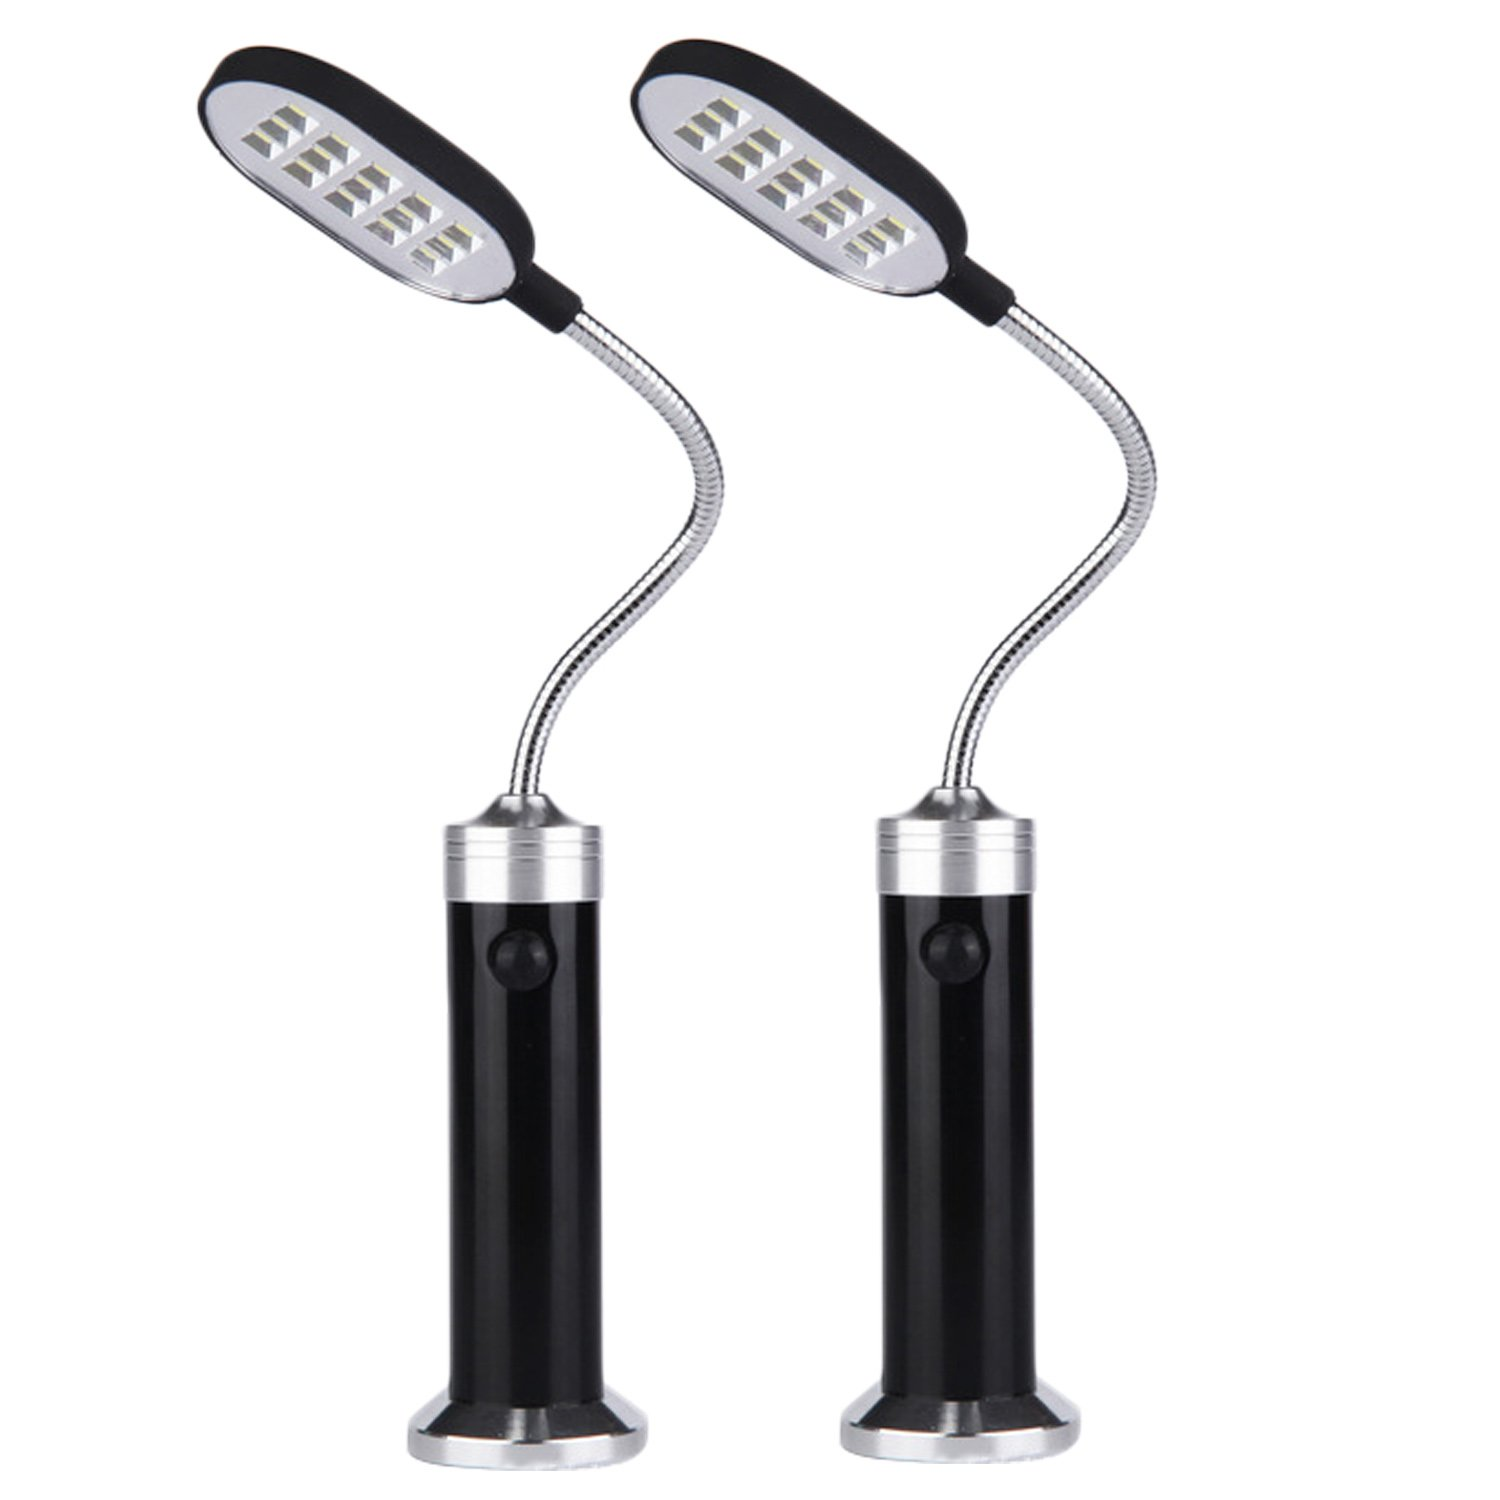 Barbeque Light, 2pcs Portable Magnetic 360 Degree Adjustable LED Light Lamp with 15 LED for BBQ Barbecue Grilling Outdoor Grill Accessories Tools Migavan